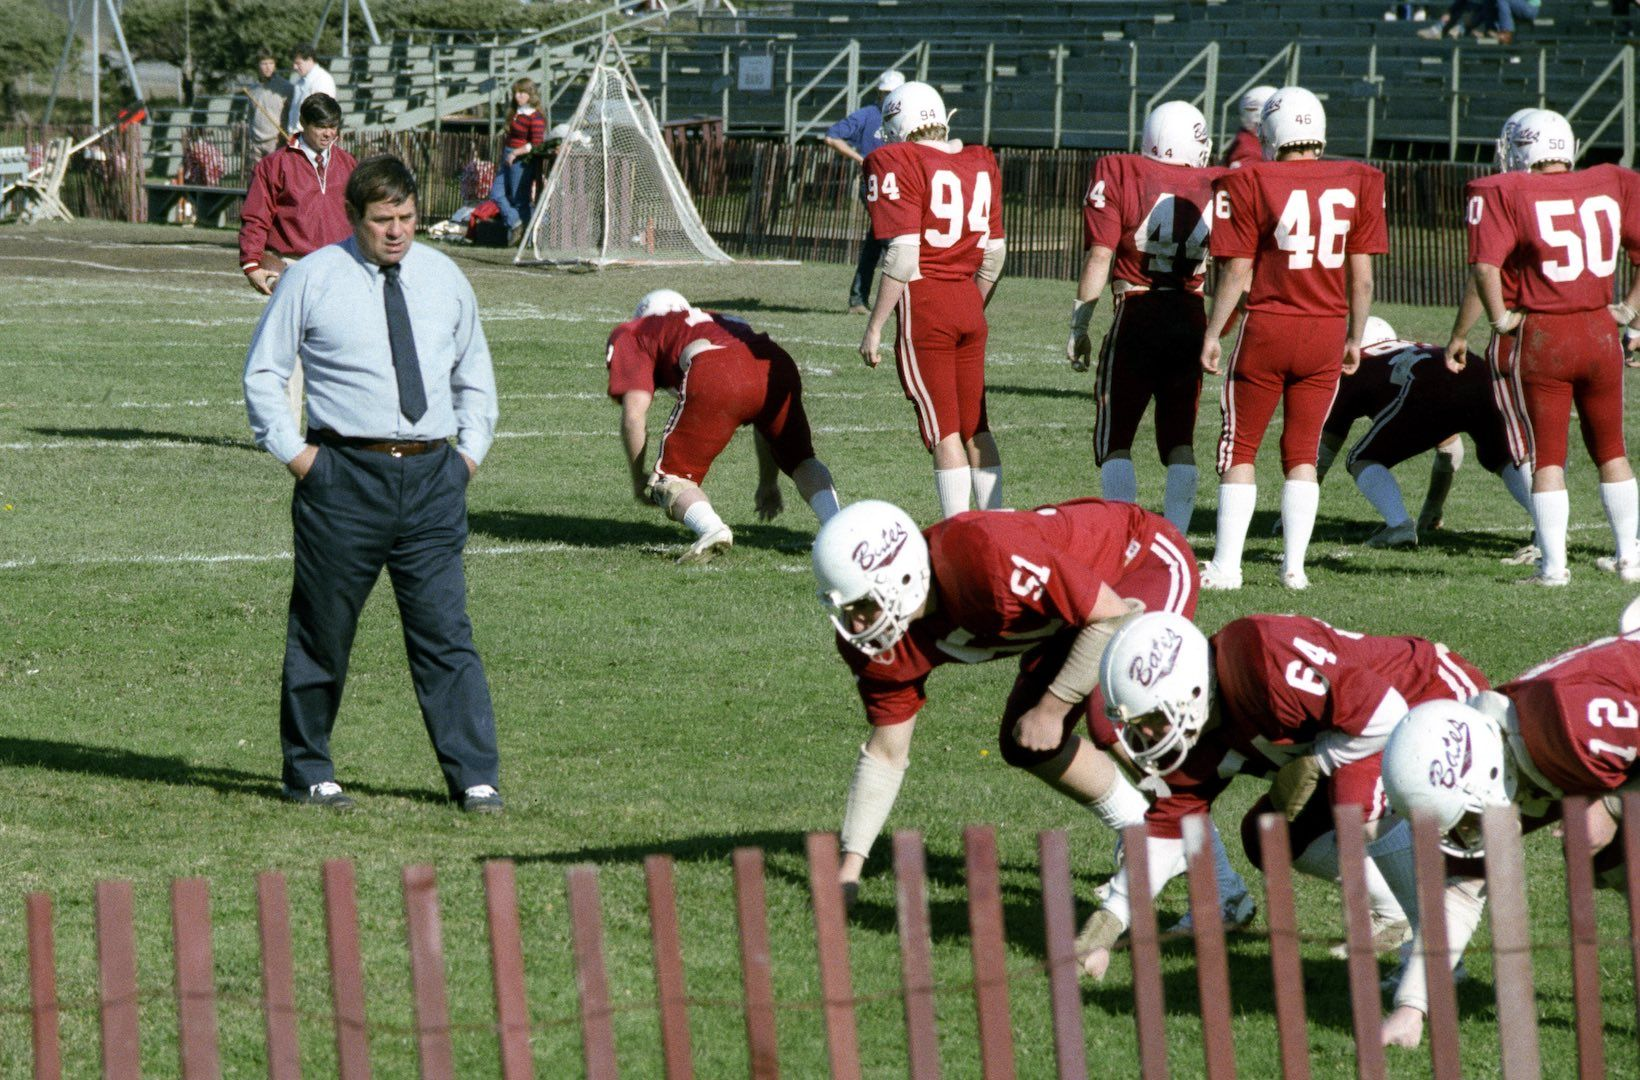 Bob Flynn watches the Bobcat linemen go through warmups in 1981. (Steve Fuller '82 photograph)